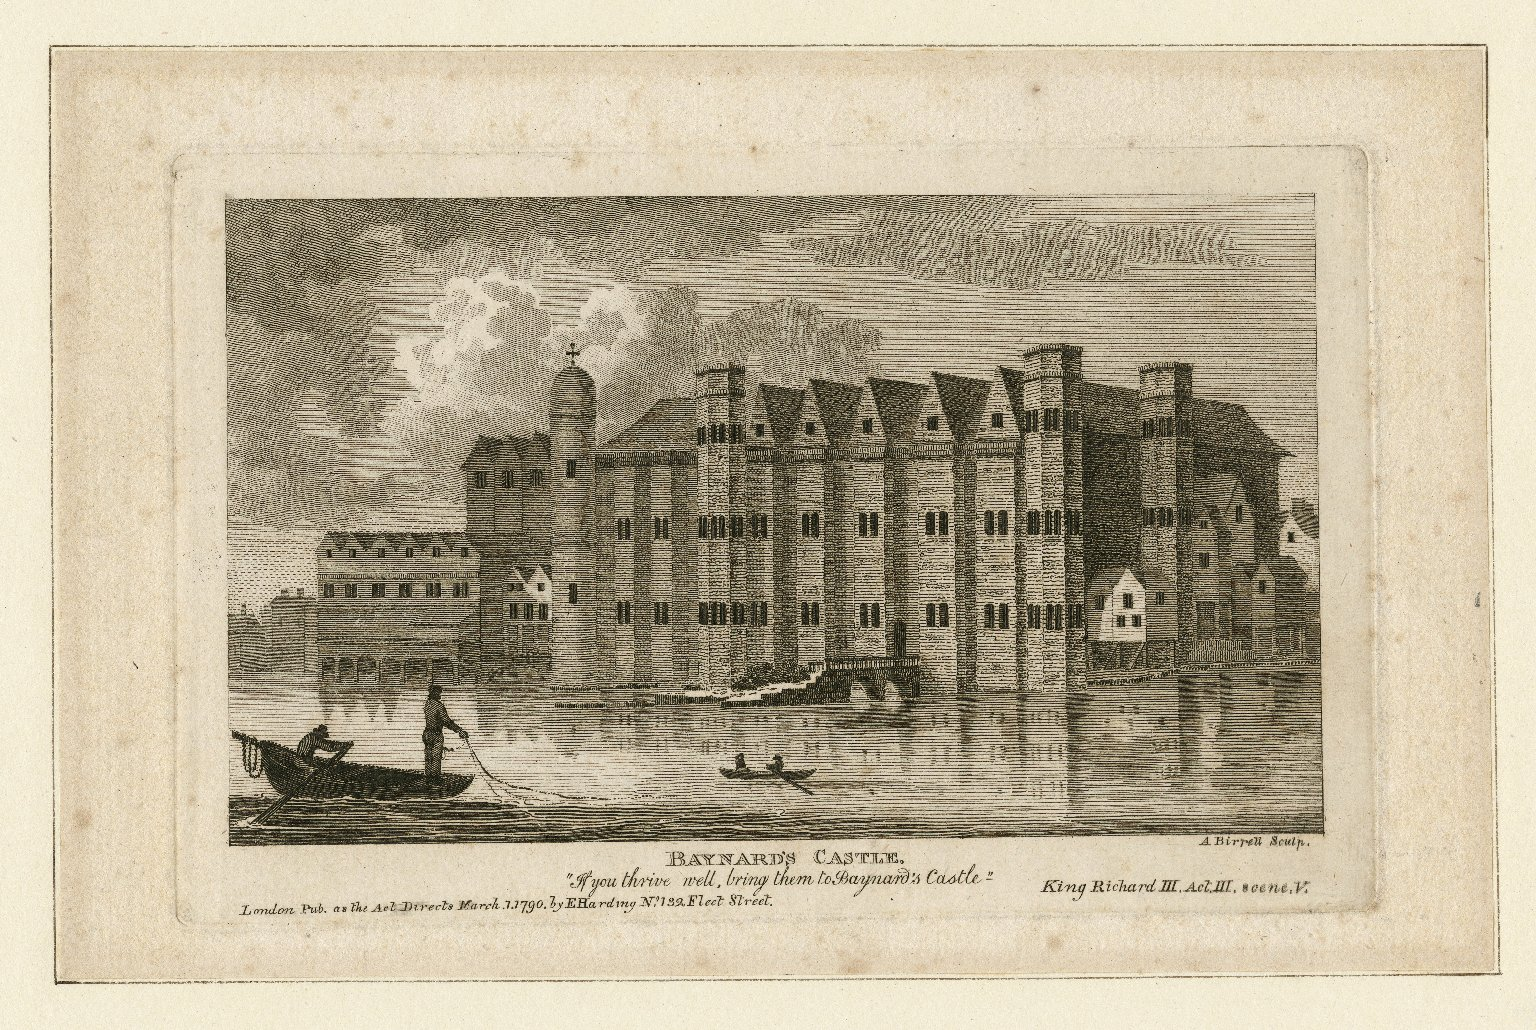 Engraving of Baynard's Castle by A. Birrell. Image courtesy of the Folger Digital Image Collection.